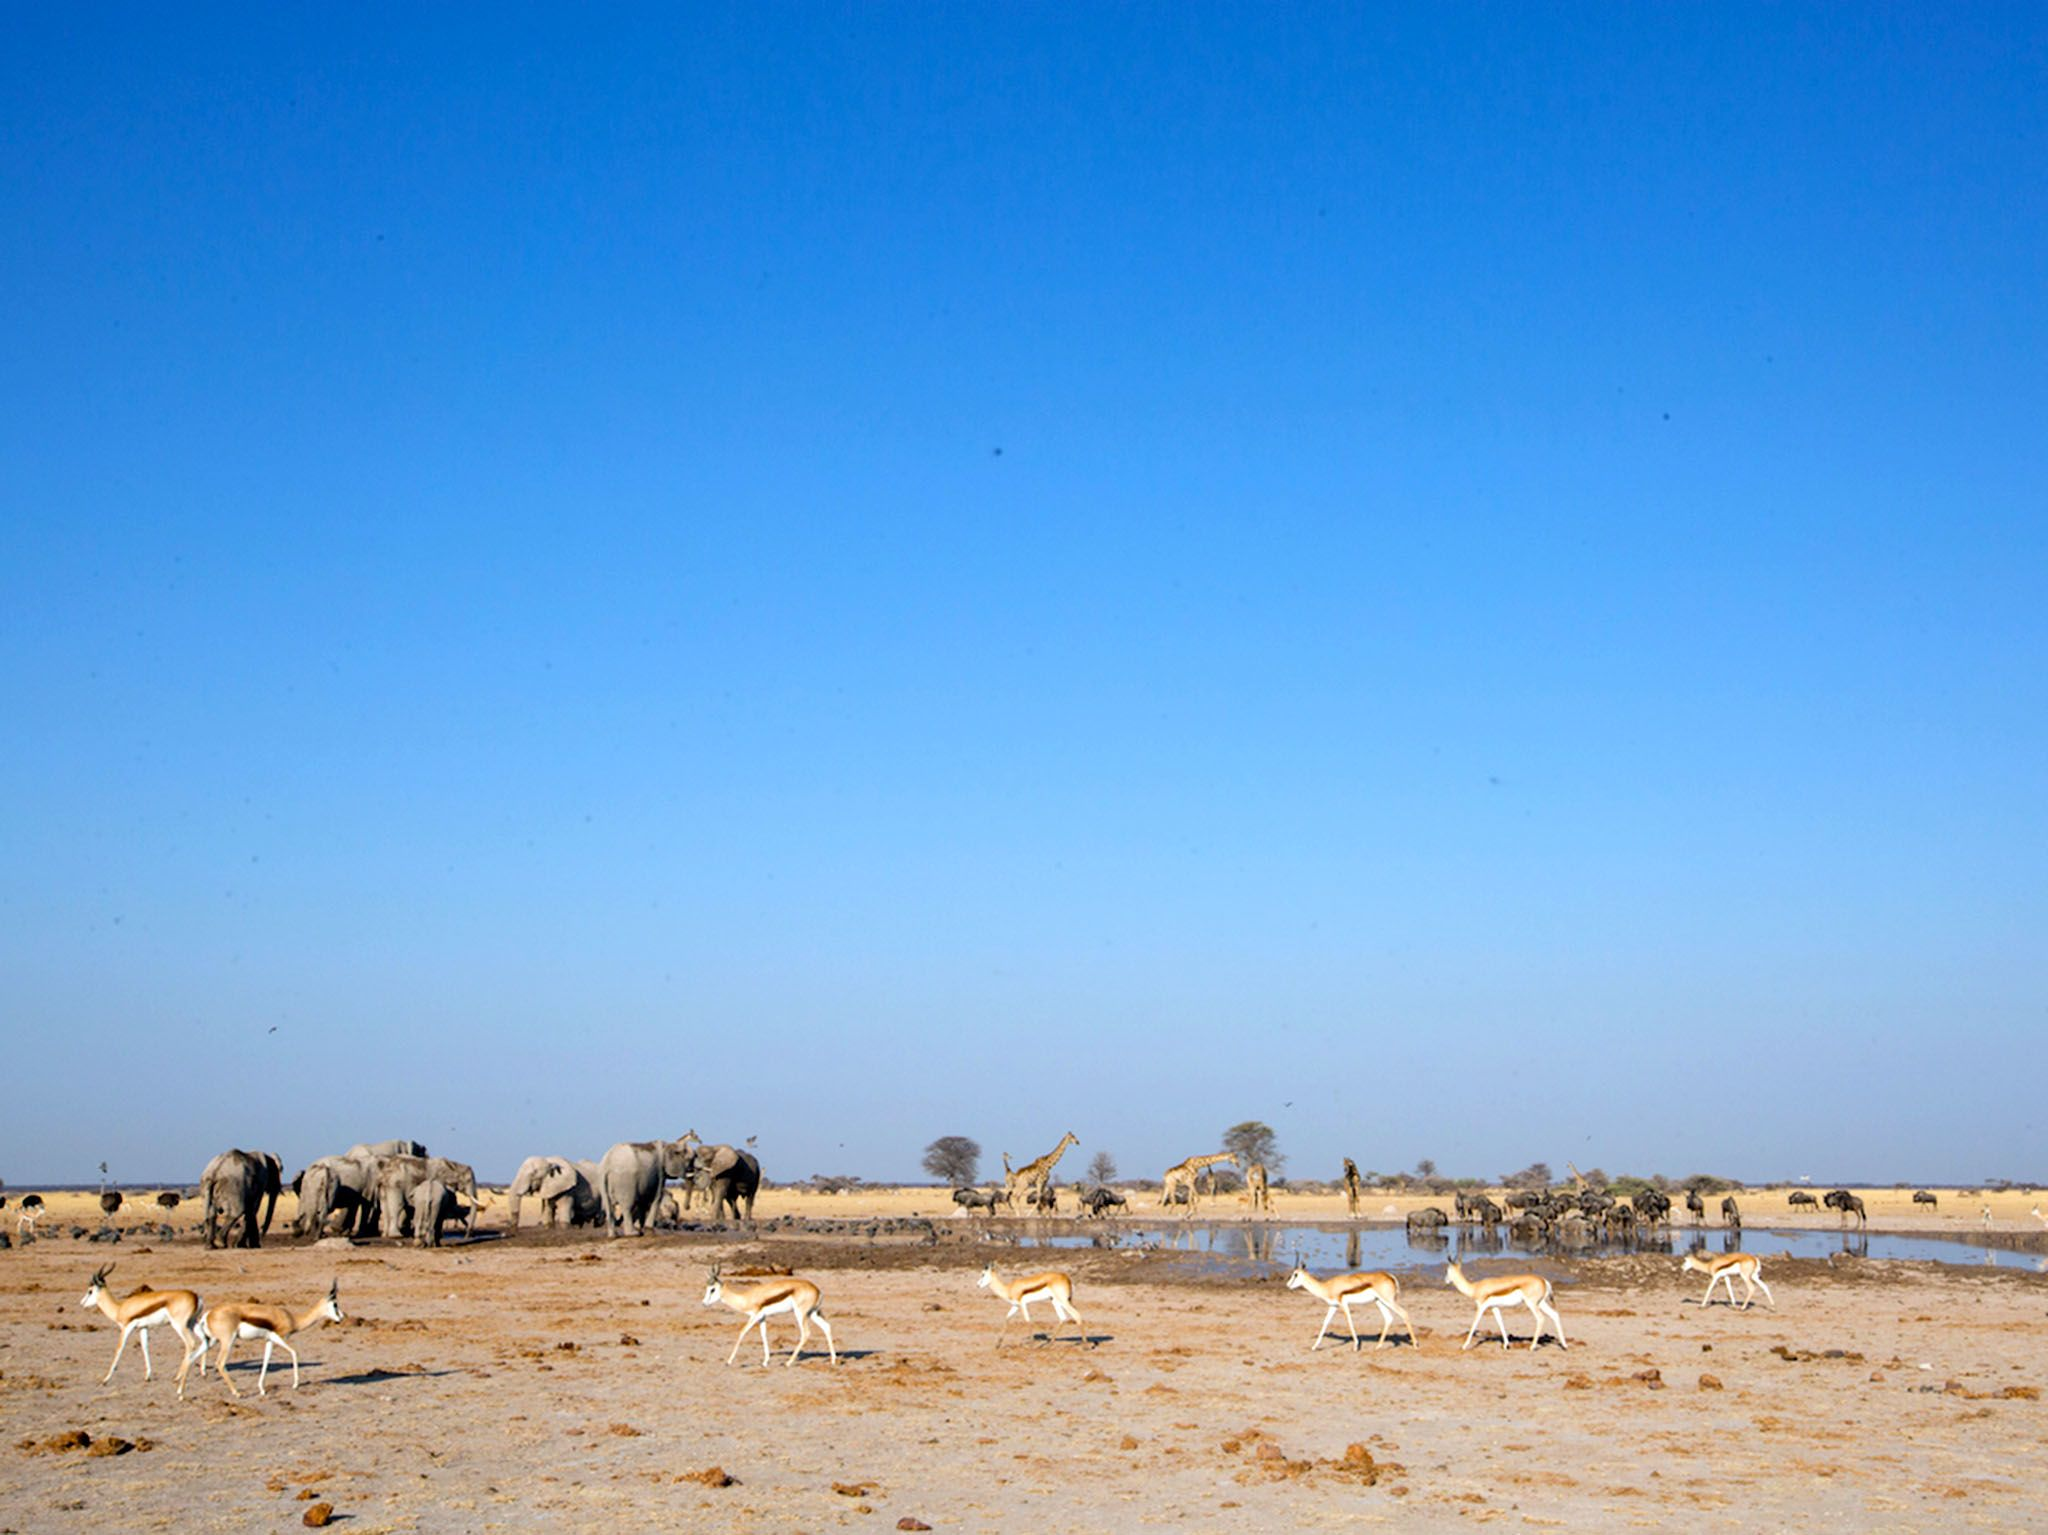 Nxai Pan, Botswana:  Shrinking waterhole surrounded by springbok  elephant herd in middle... [Photo of the day - November 2017]